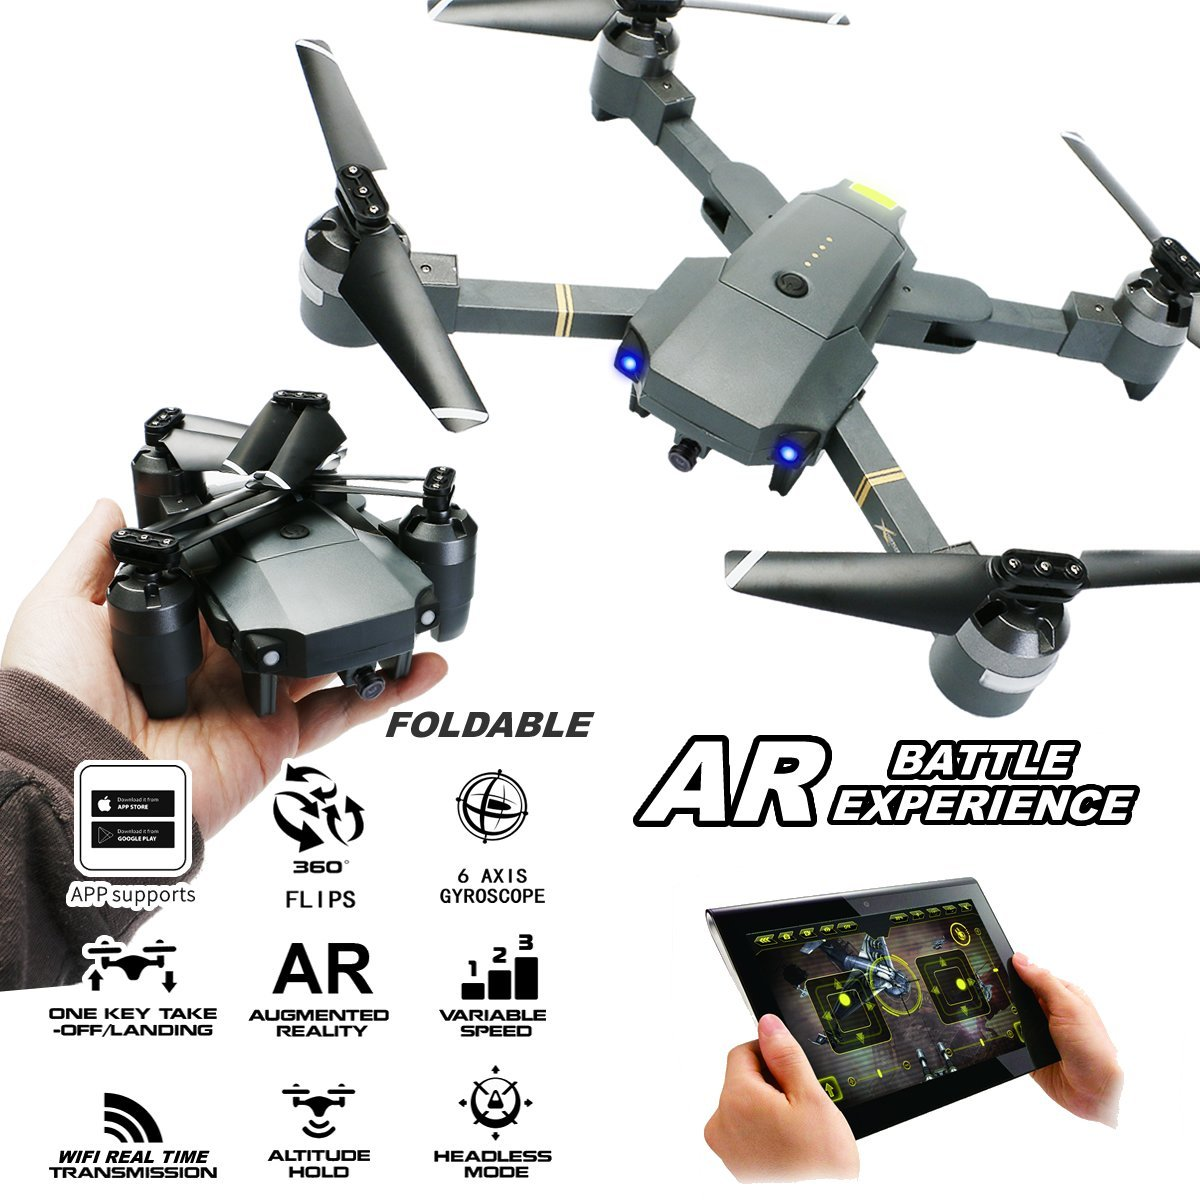 ATTOP XT-1 2.4Ghz RC Quadcopter Foldable Drone One Key Take Off & Land WIFI FPV Drones w/ HD Camera Altitude Hold Headless Mode attop xt 1 wifi 2 4g fpv drone camera 3d flip altitude hold foldable one key take off landing headless mode rc quadcopter